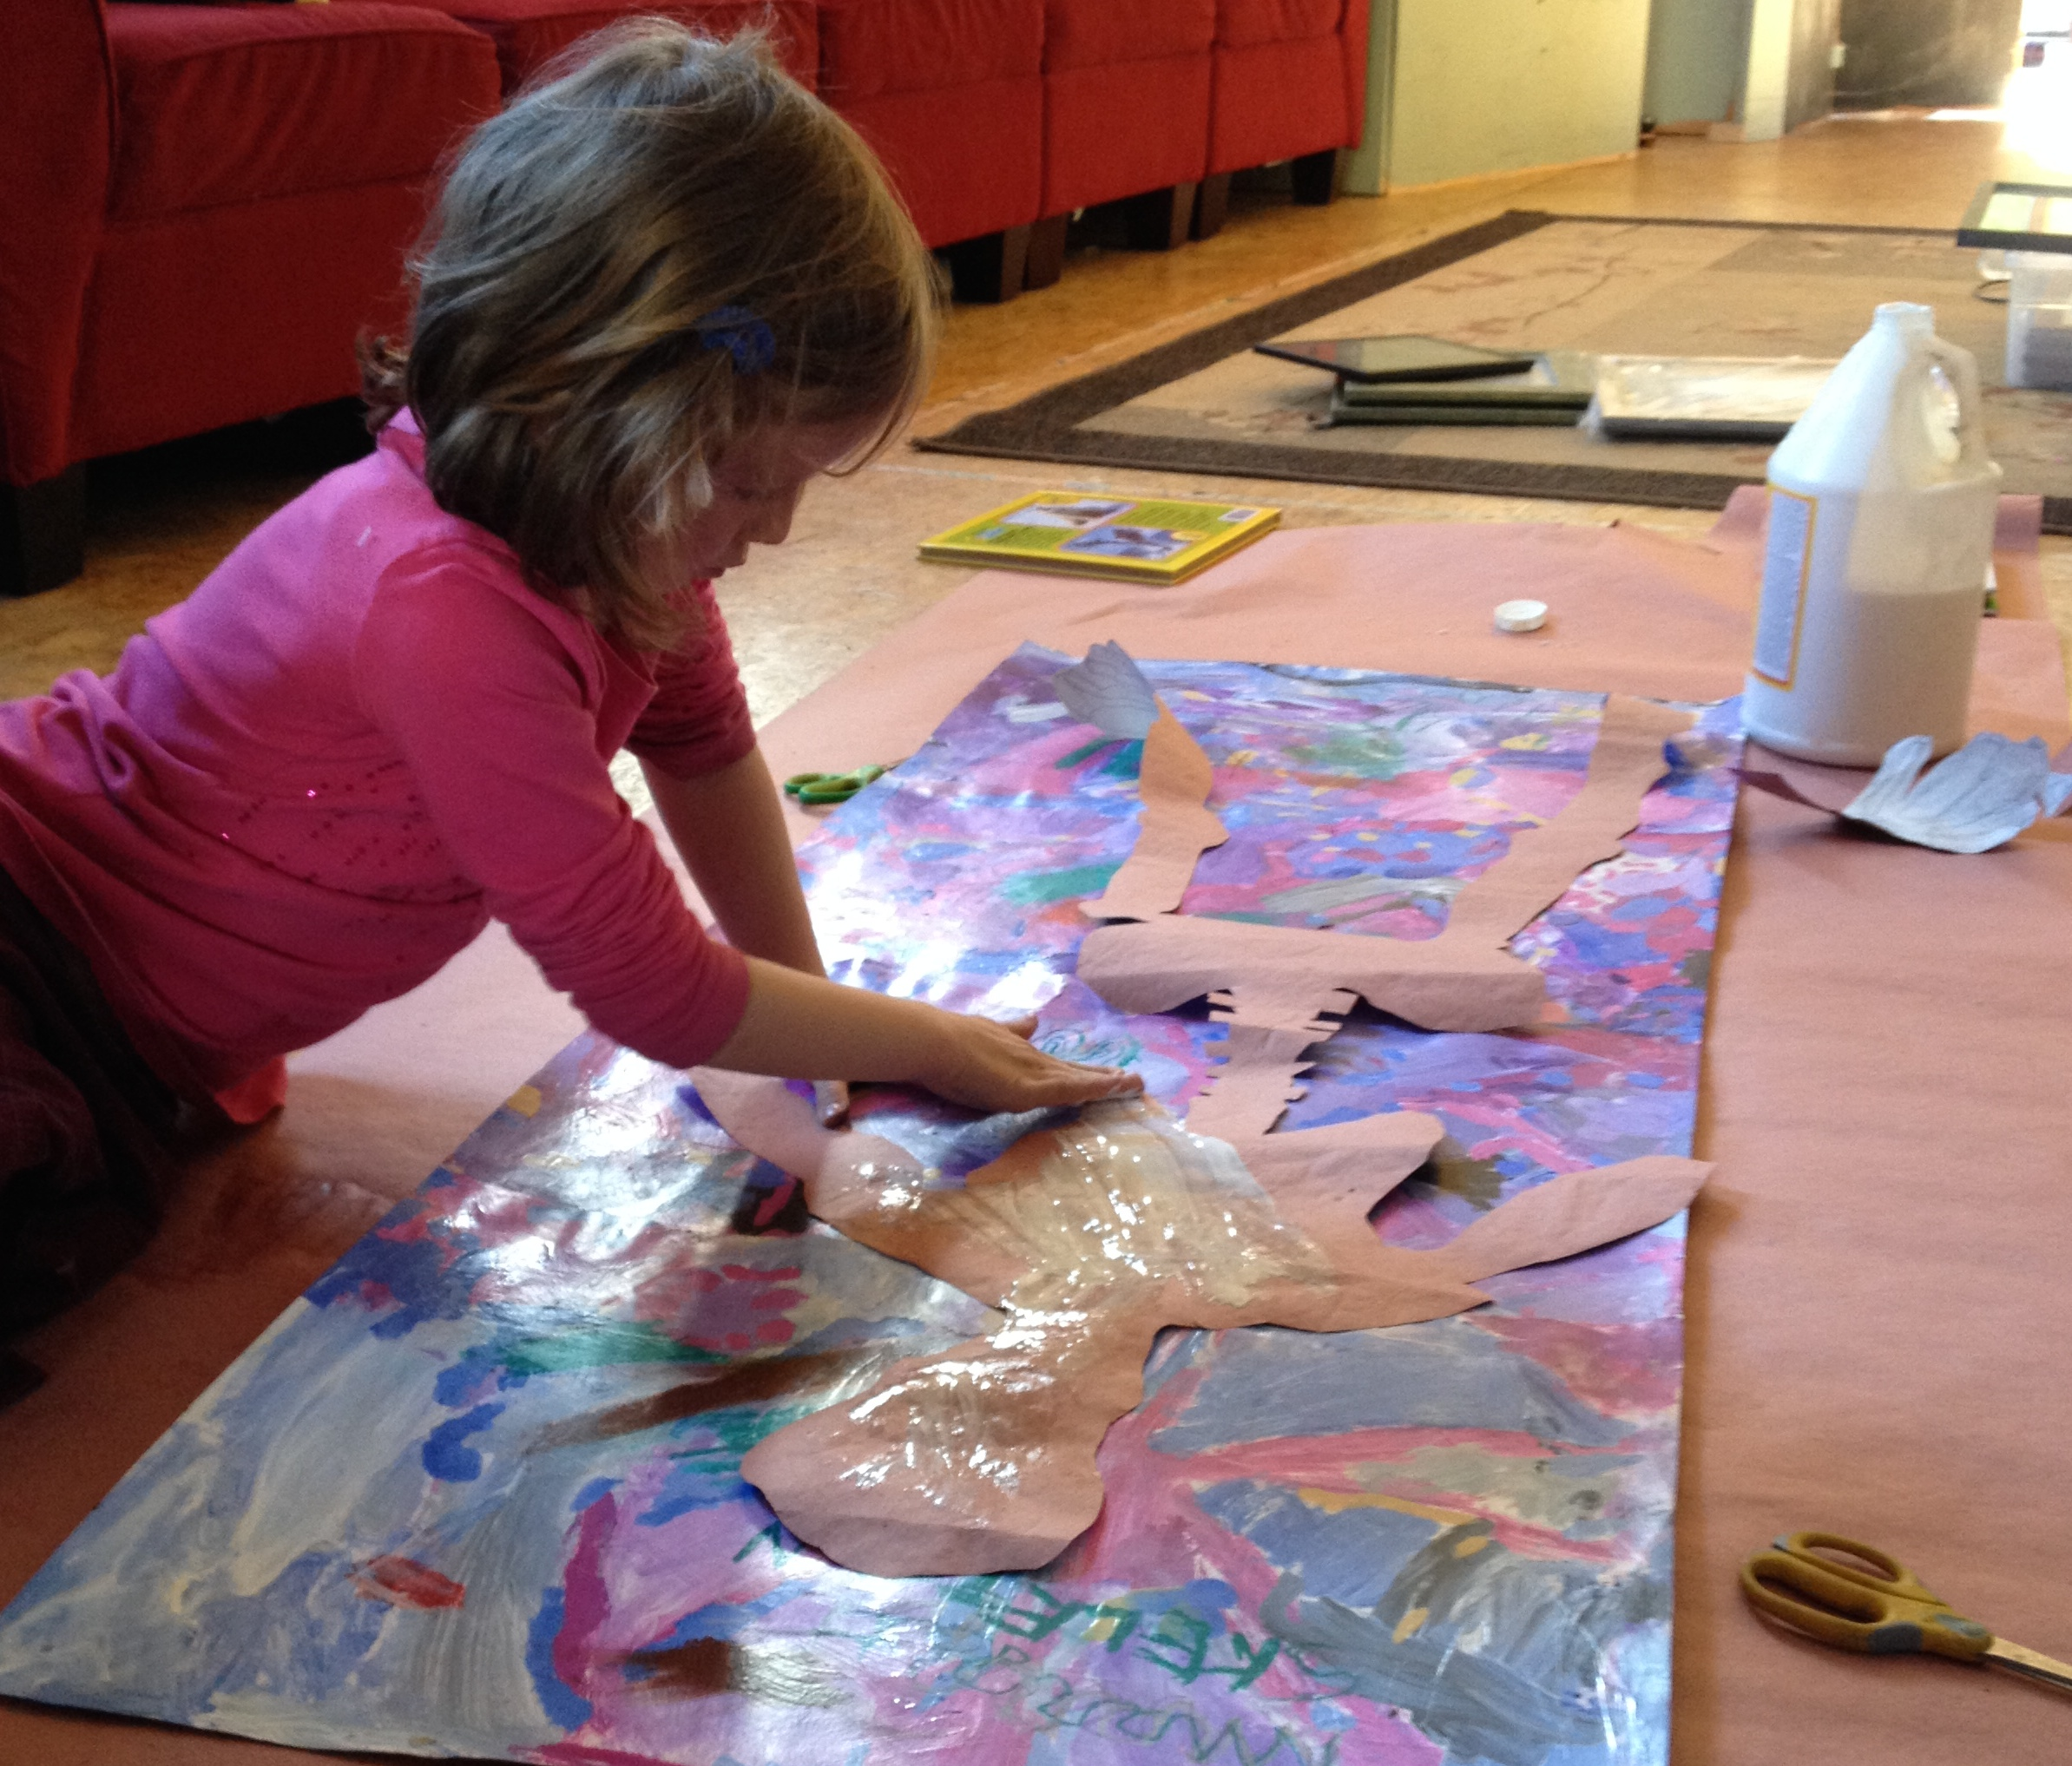 large-scale collage on the floor, age 6